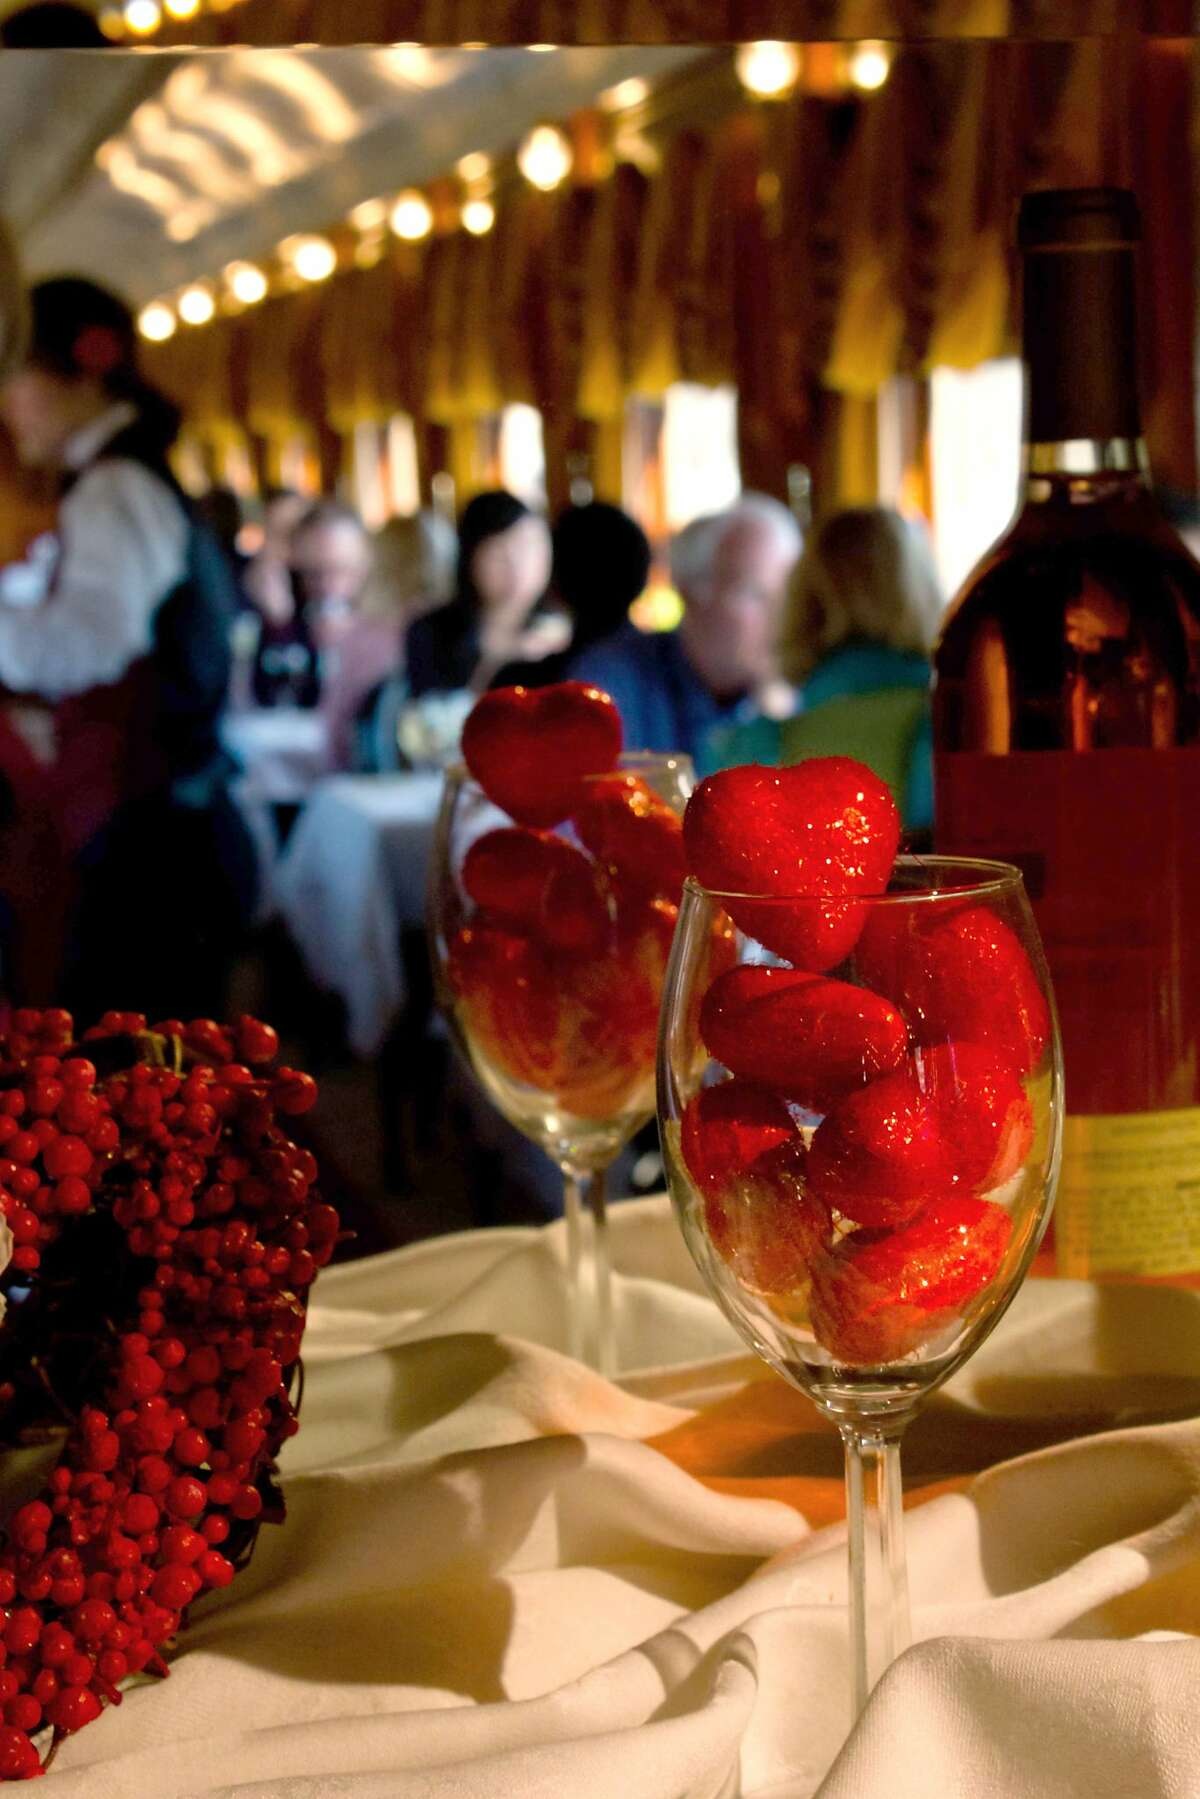 The Napa Valley Wine Train offers special Valentine's Day Weekend runs in either the intimate, glass-enclosed Vista Dome or luxury Gourmet Express car.